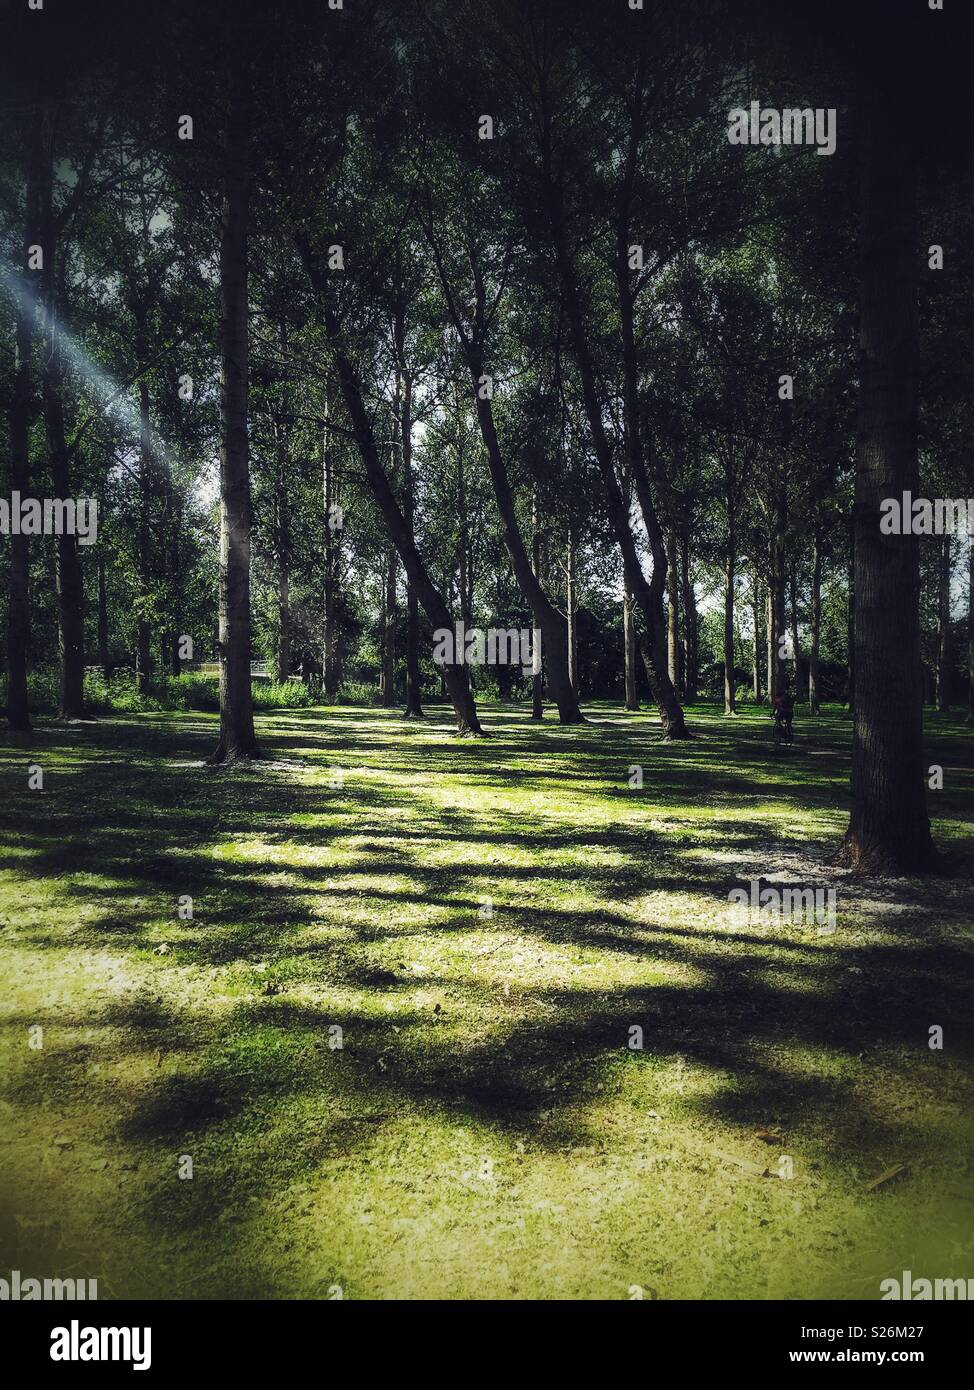 Shady woods with sunlight streaming in casting deep shadows on the grass below. Willen Lake, Milton Keynes, England. - Stock Image